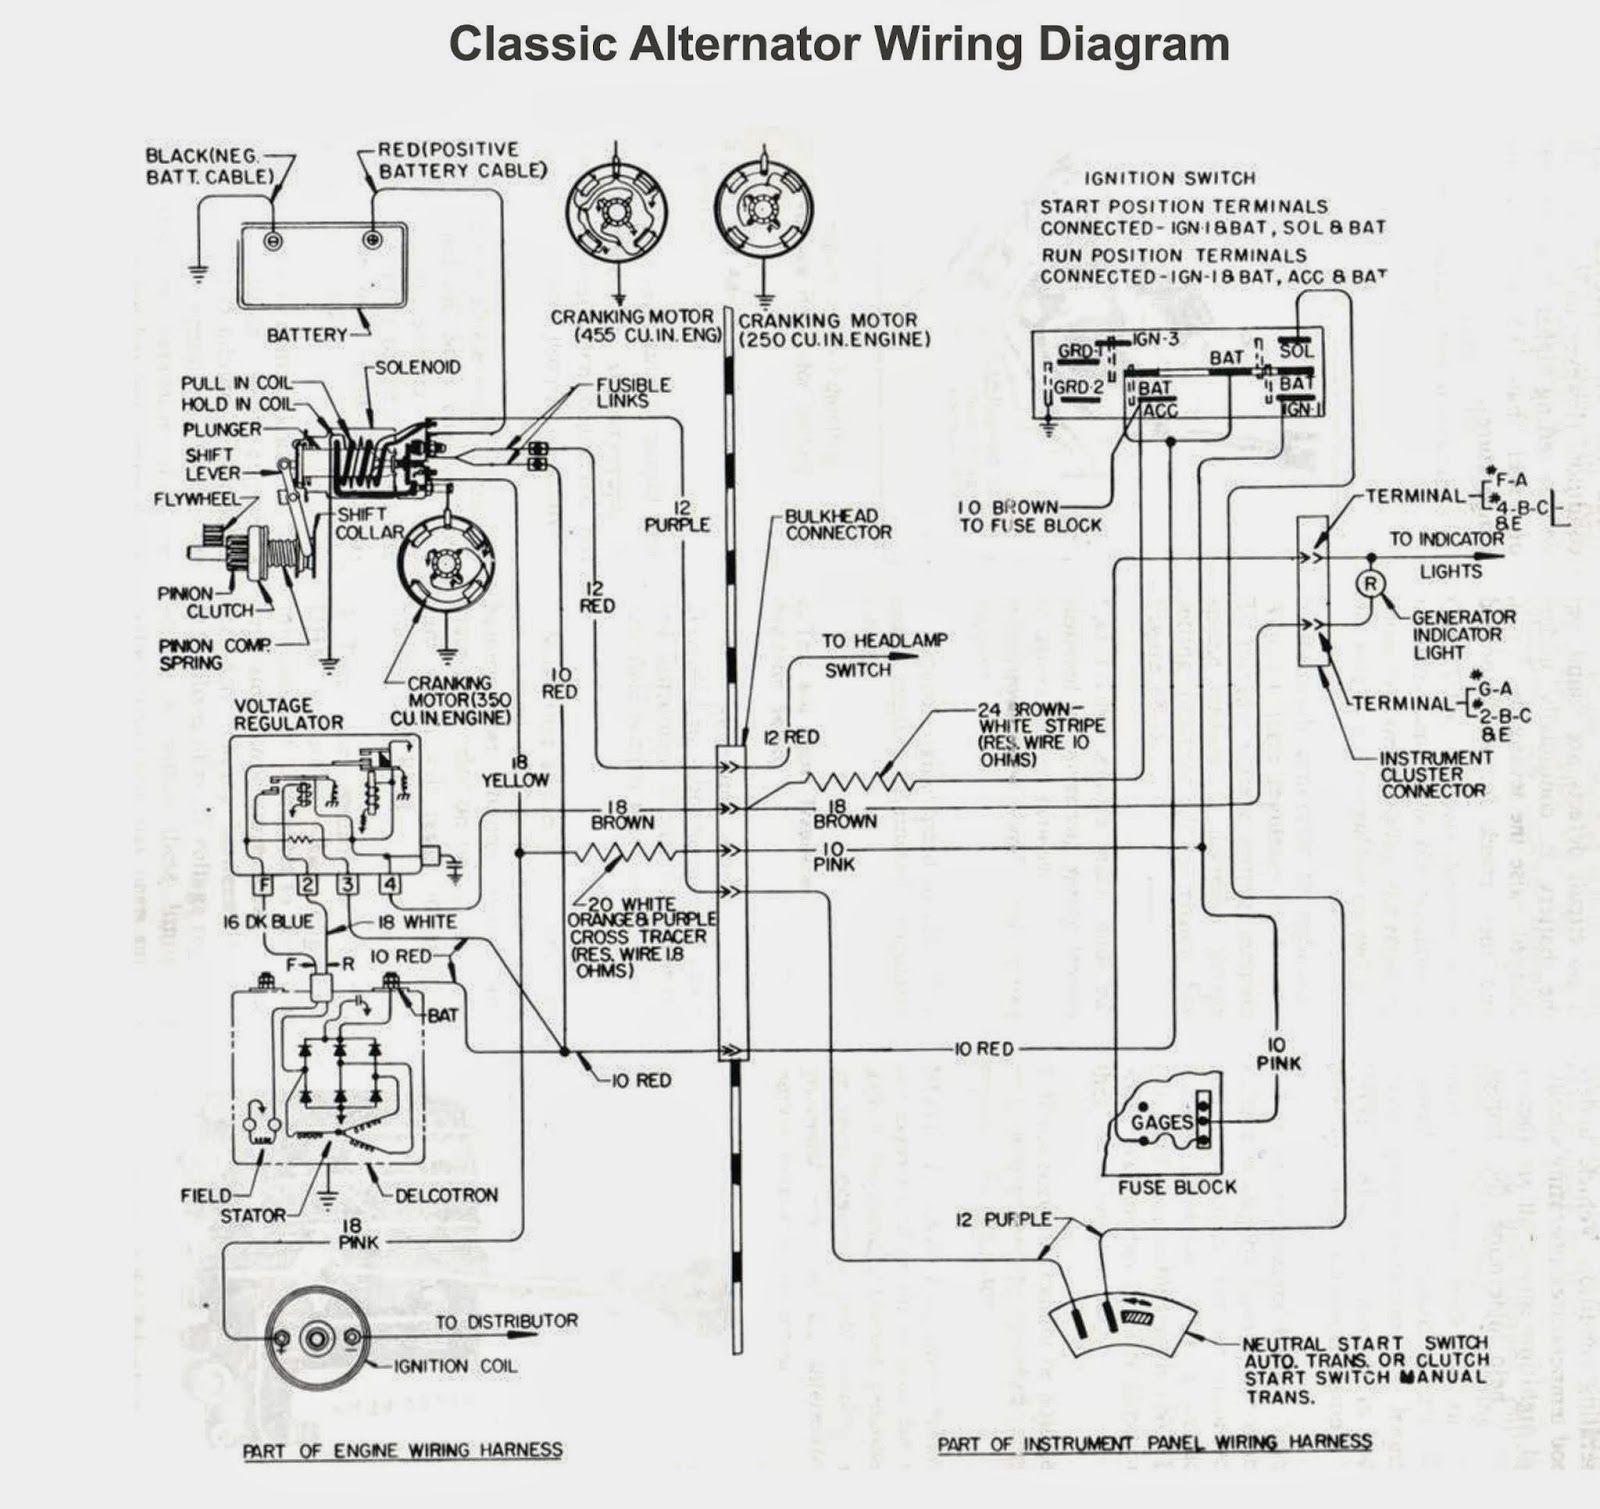 Generator Voltmeter Ac Wiring Circuits - Wiring Diagram Priv on electronics circuits, thermostat circuits, relay circuits, building circuits, audio circuits, electrical circuits, computer circuits, inverter circuits, power circuits, wire circuits, coil circuits, motor circuits, lighting circuits, control circuits, three circuits, battery circuits,